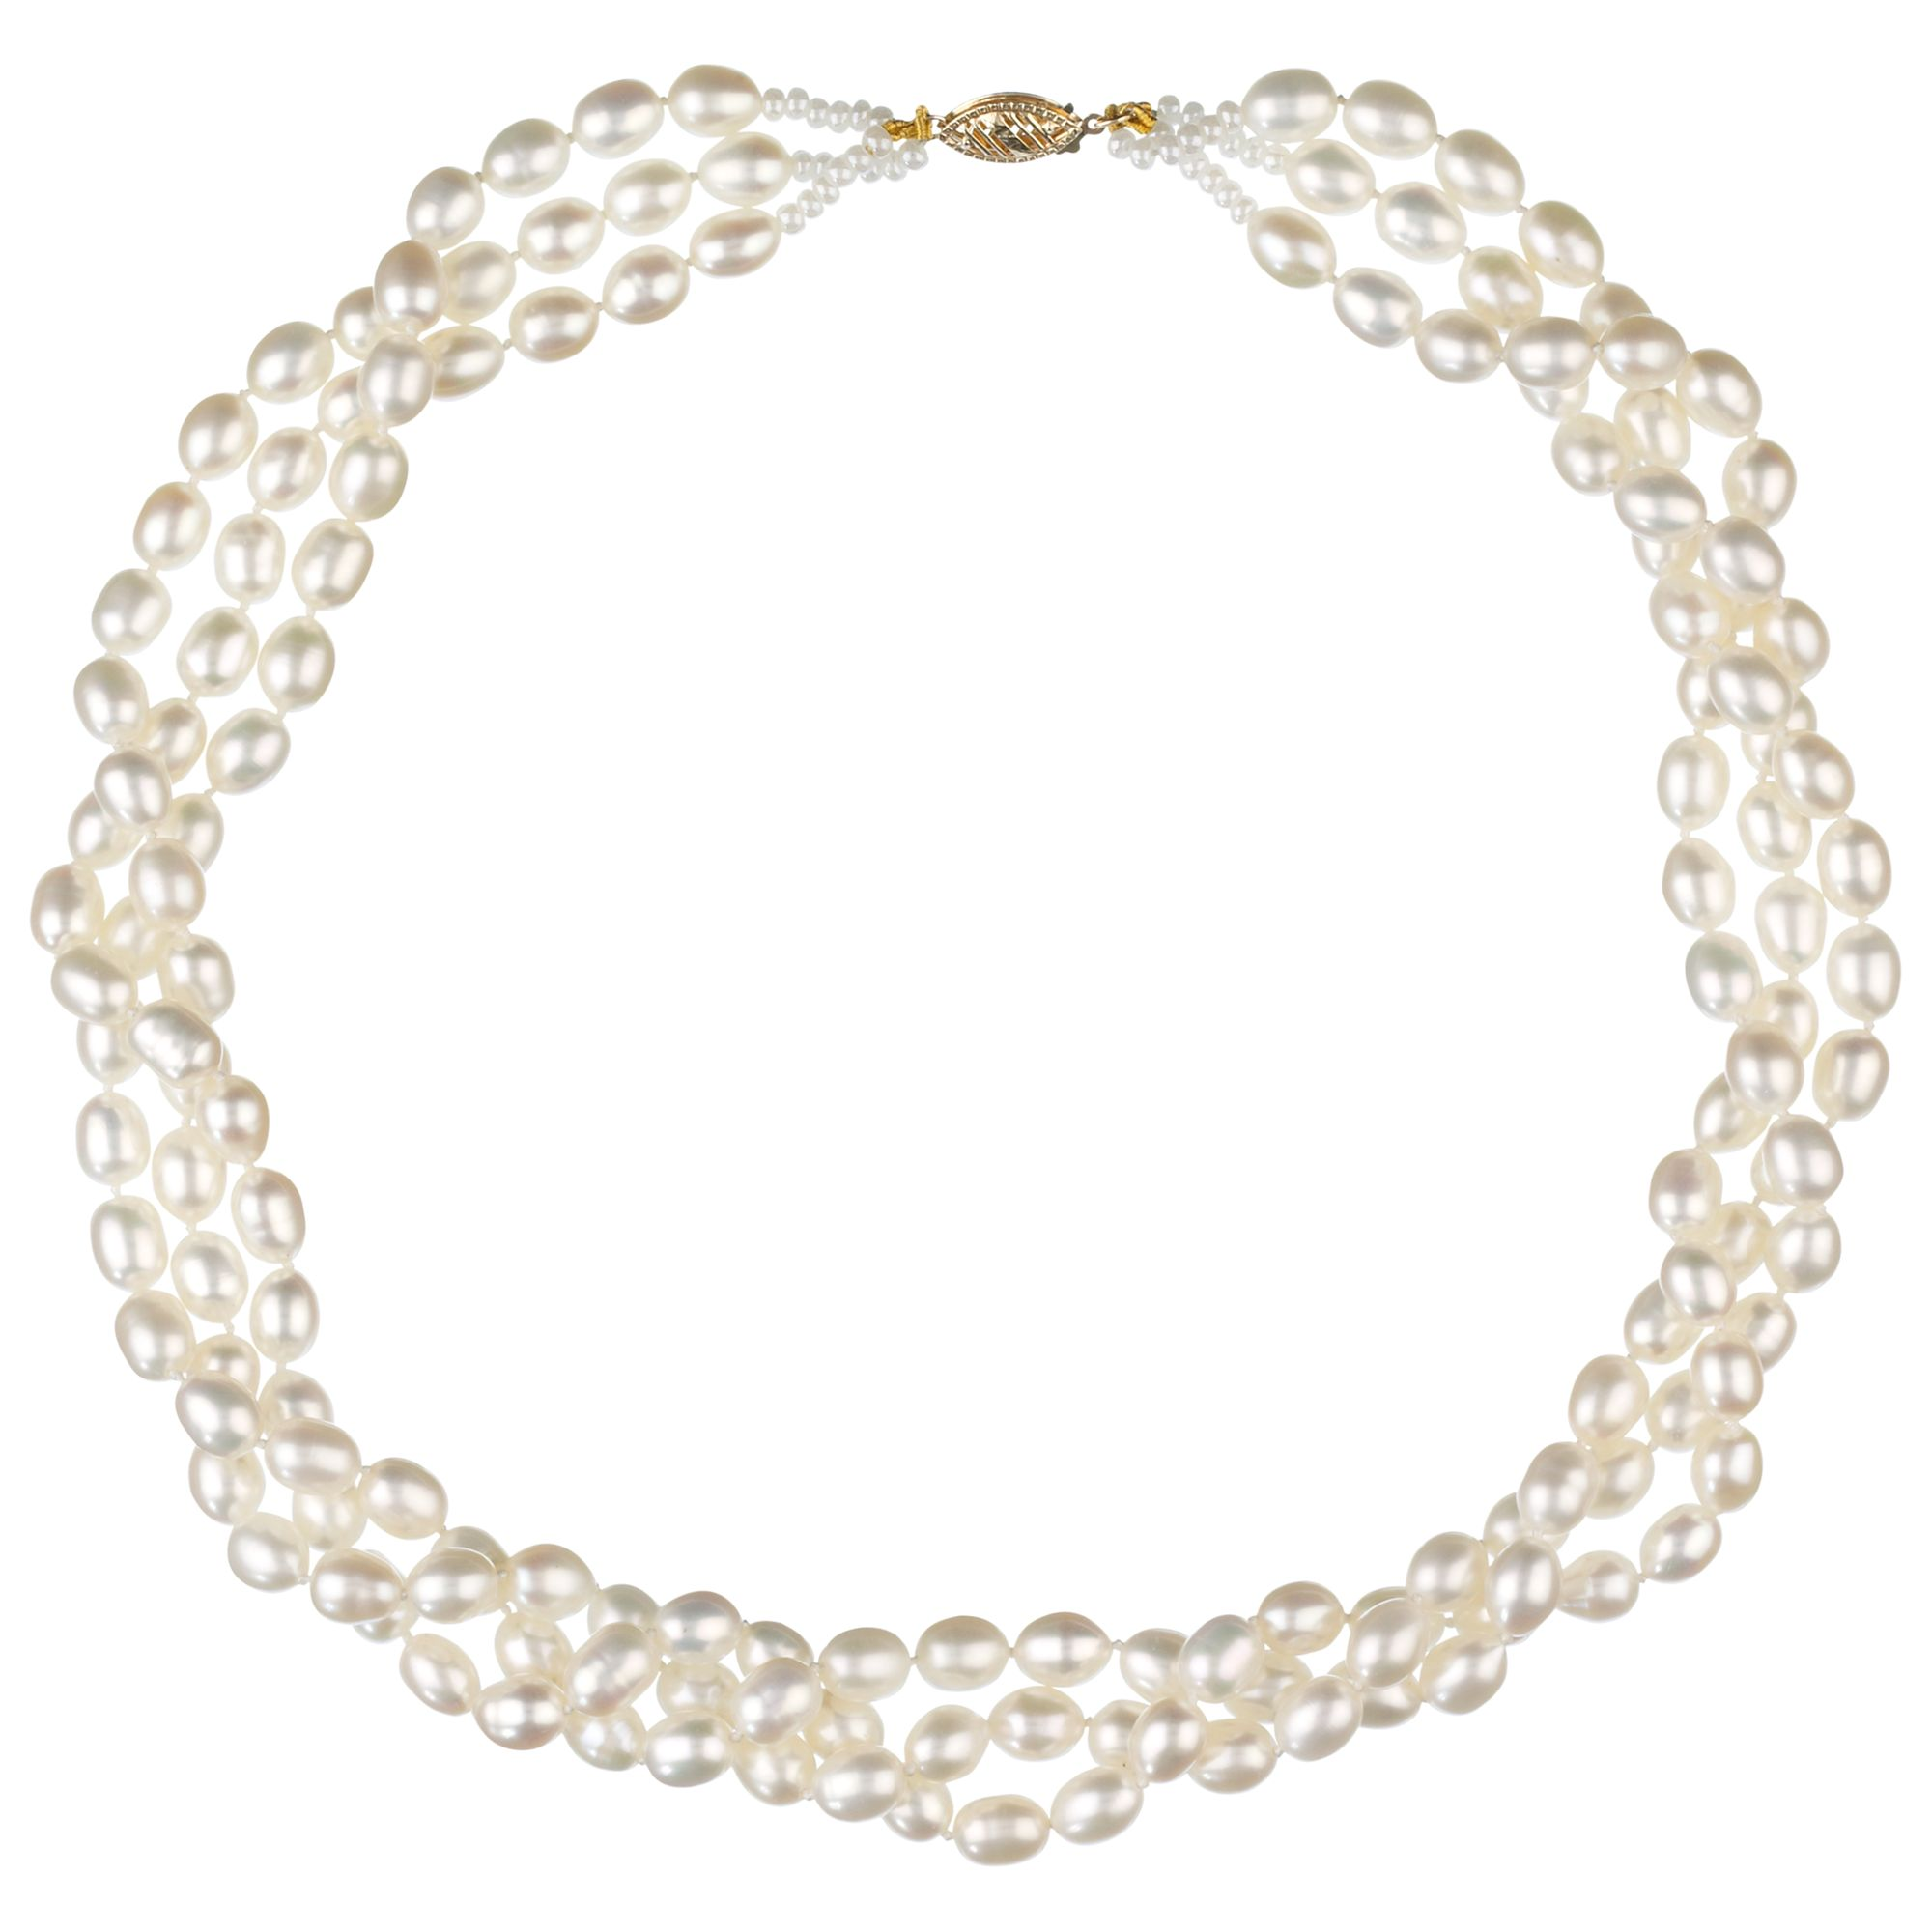 Oval Three Row Freshwater Pearl Necklace, White